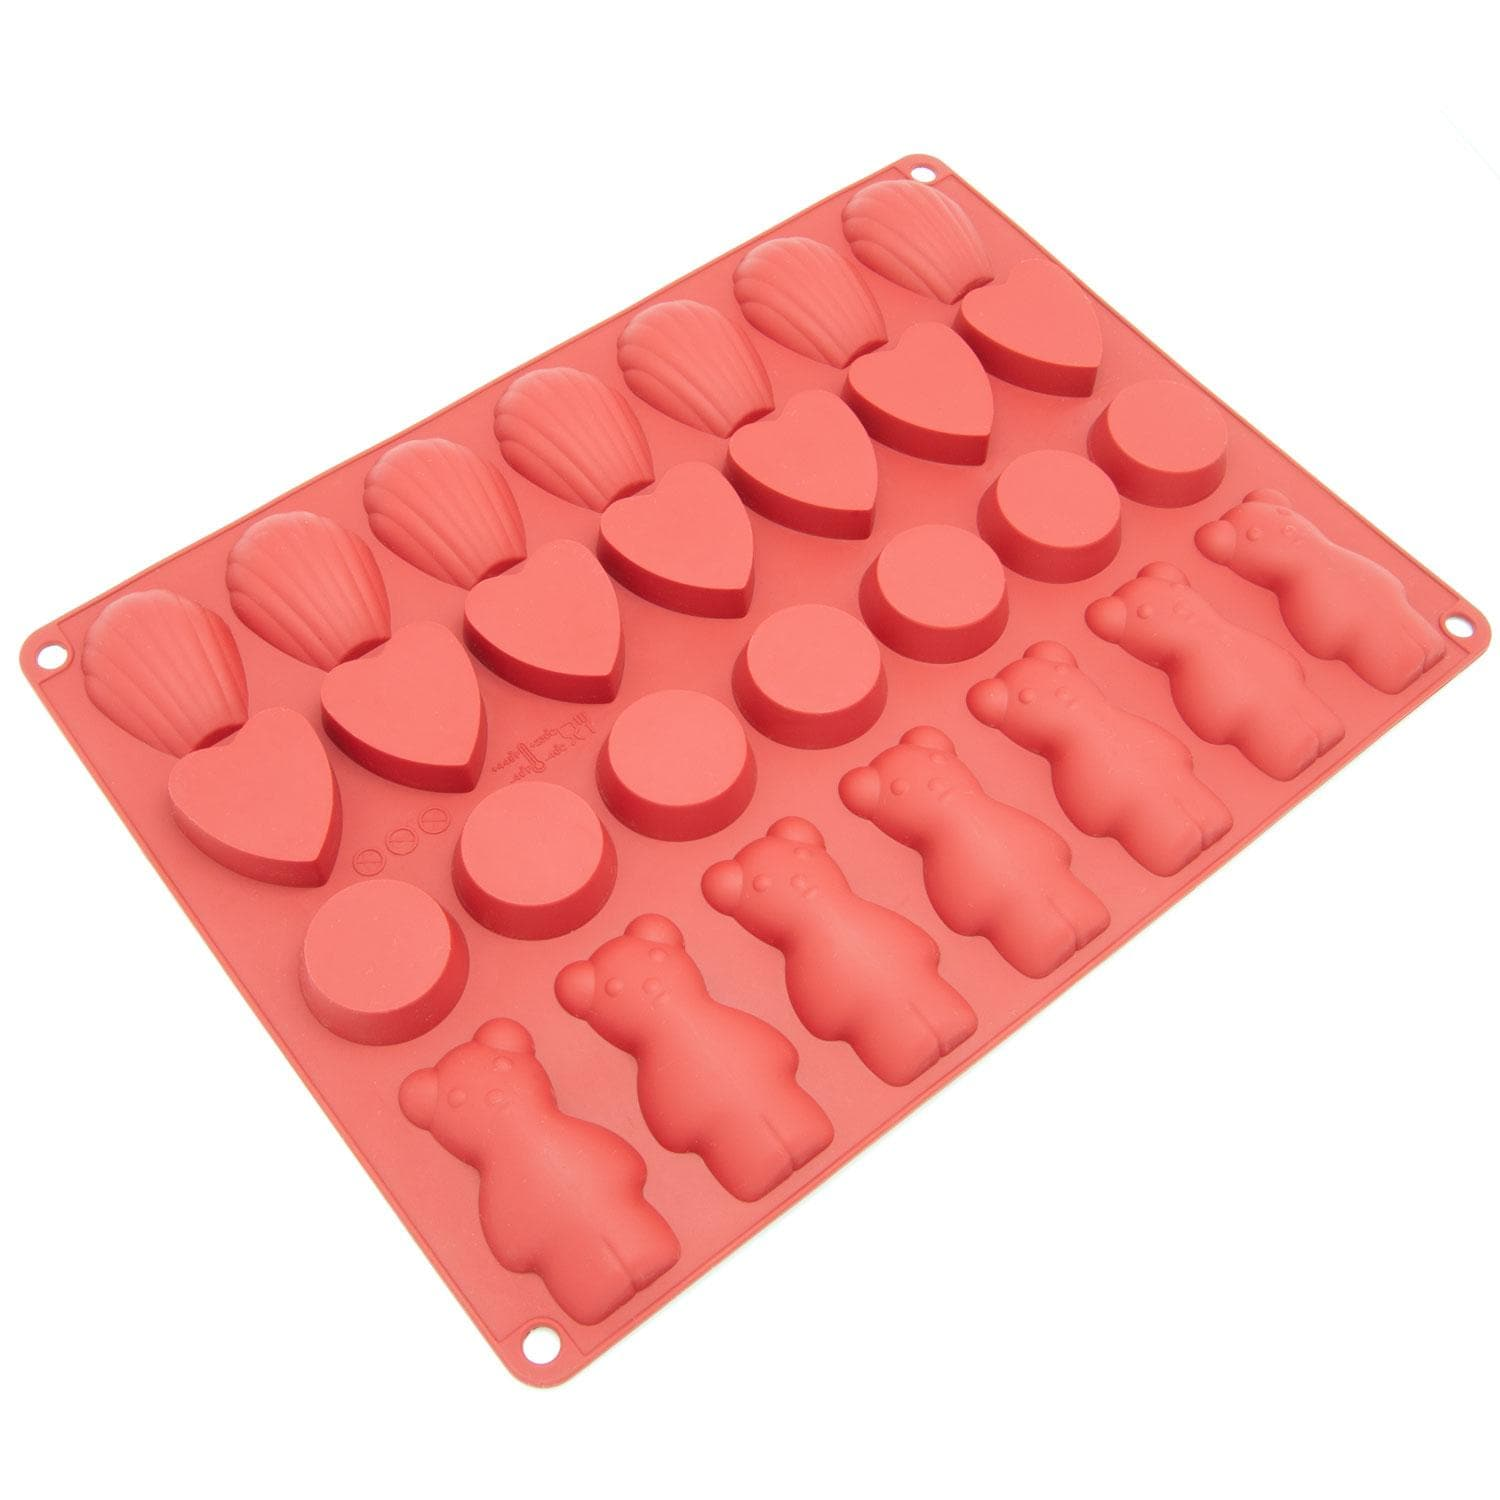 Freshware 28-cavity Silicone Chocolate, Cookie, Candy and Pastry Mold